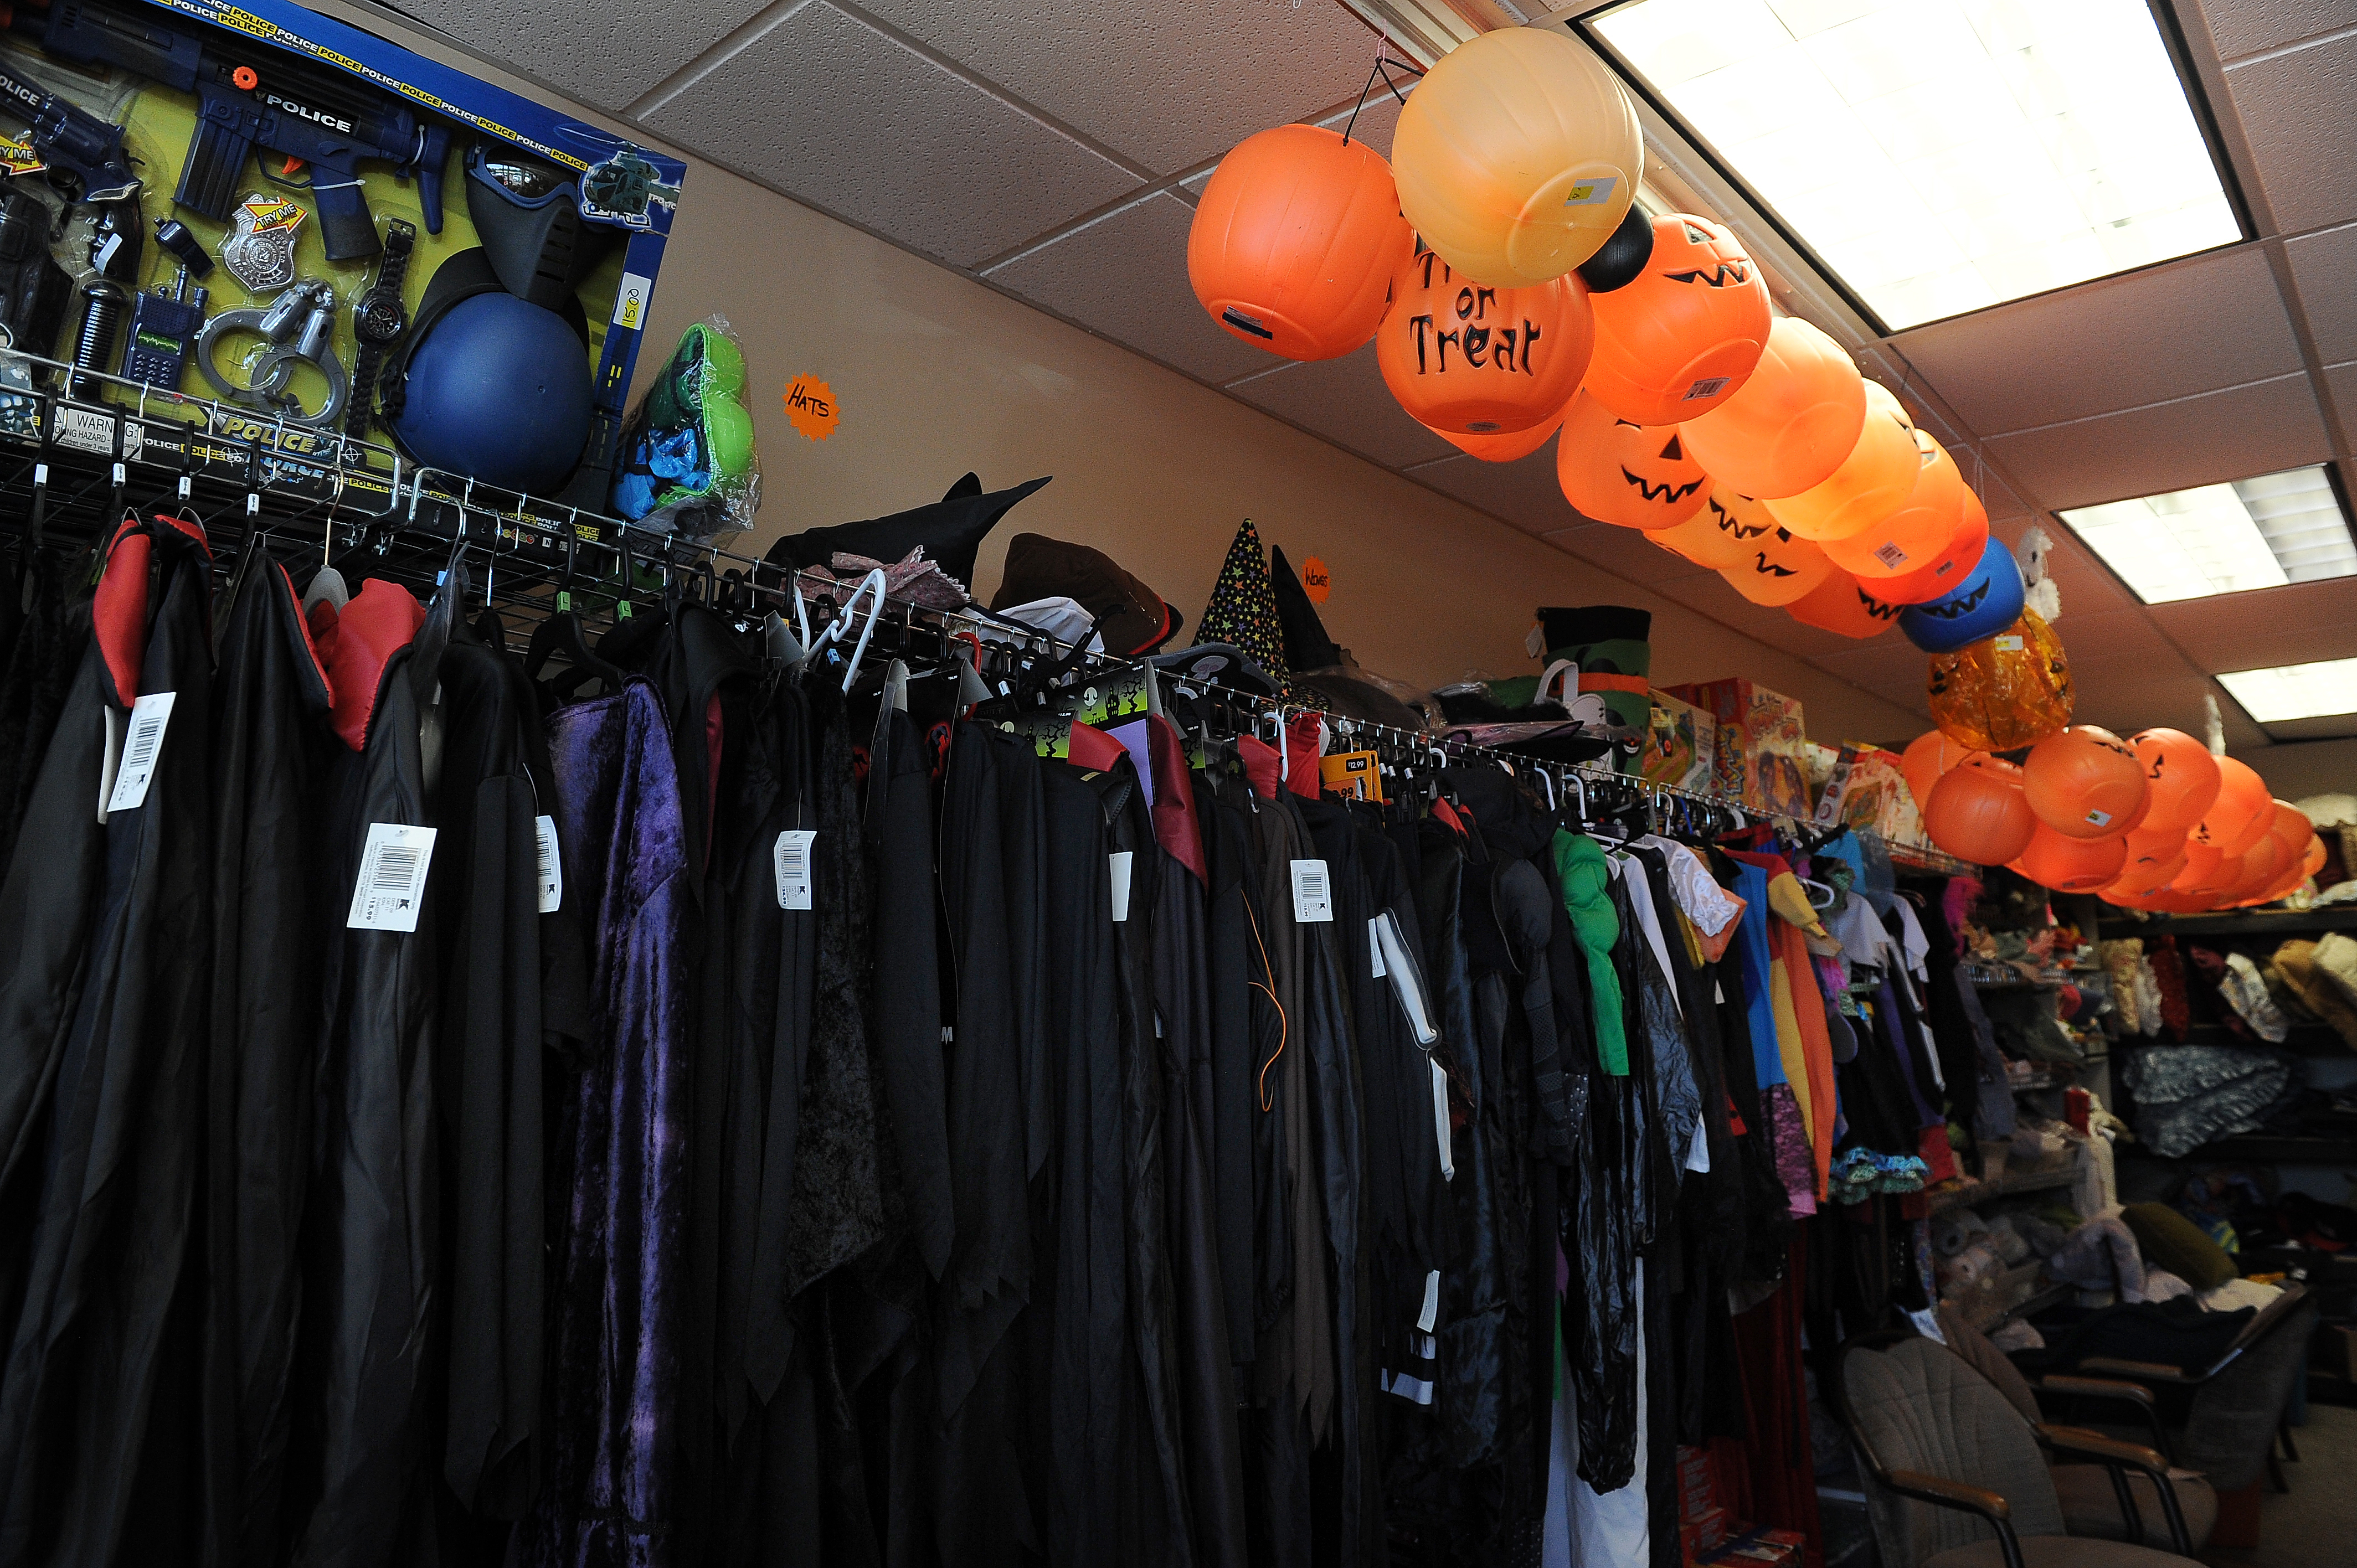 Halloween costumes and goods for sale at a thrift store in Colorado on Sept. 18, 2015.